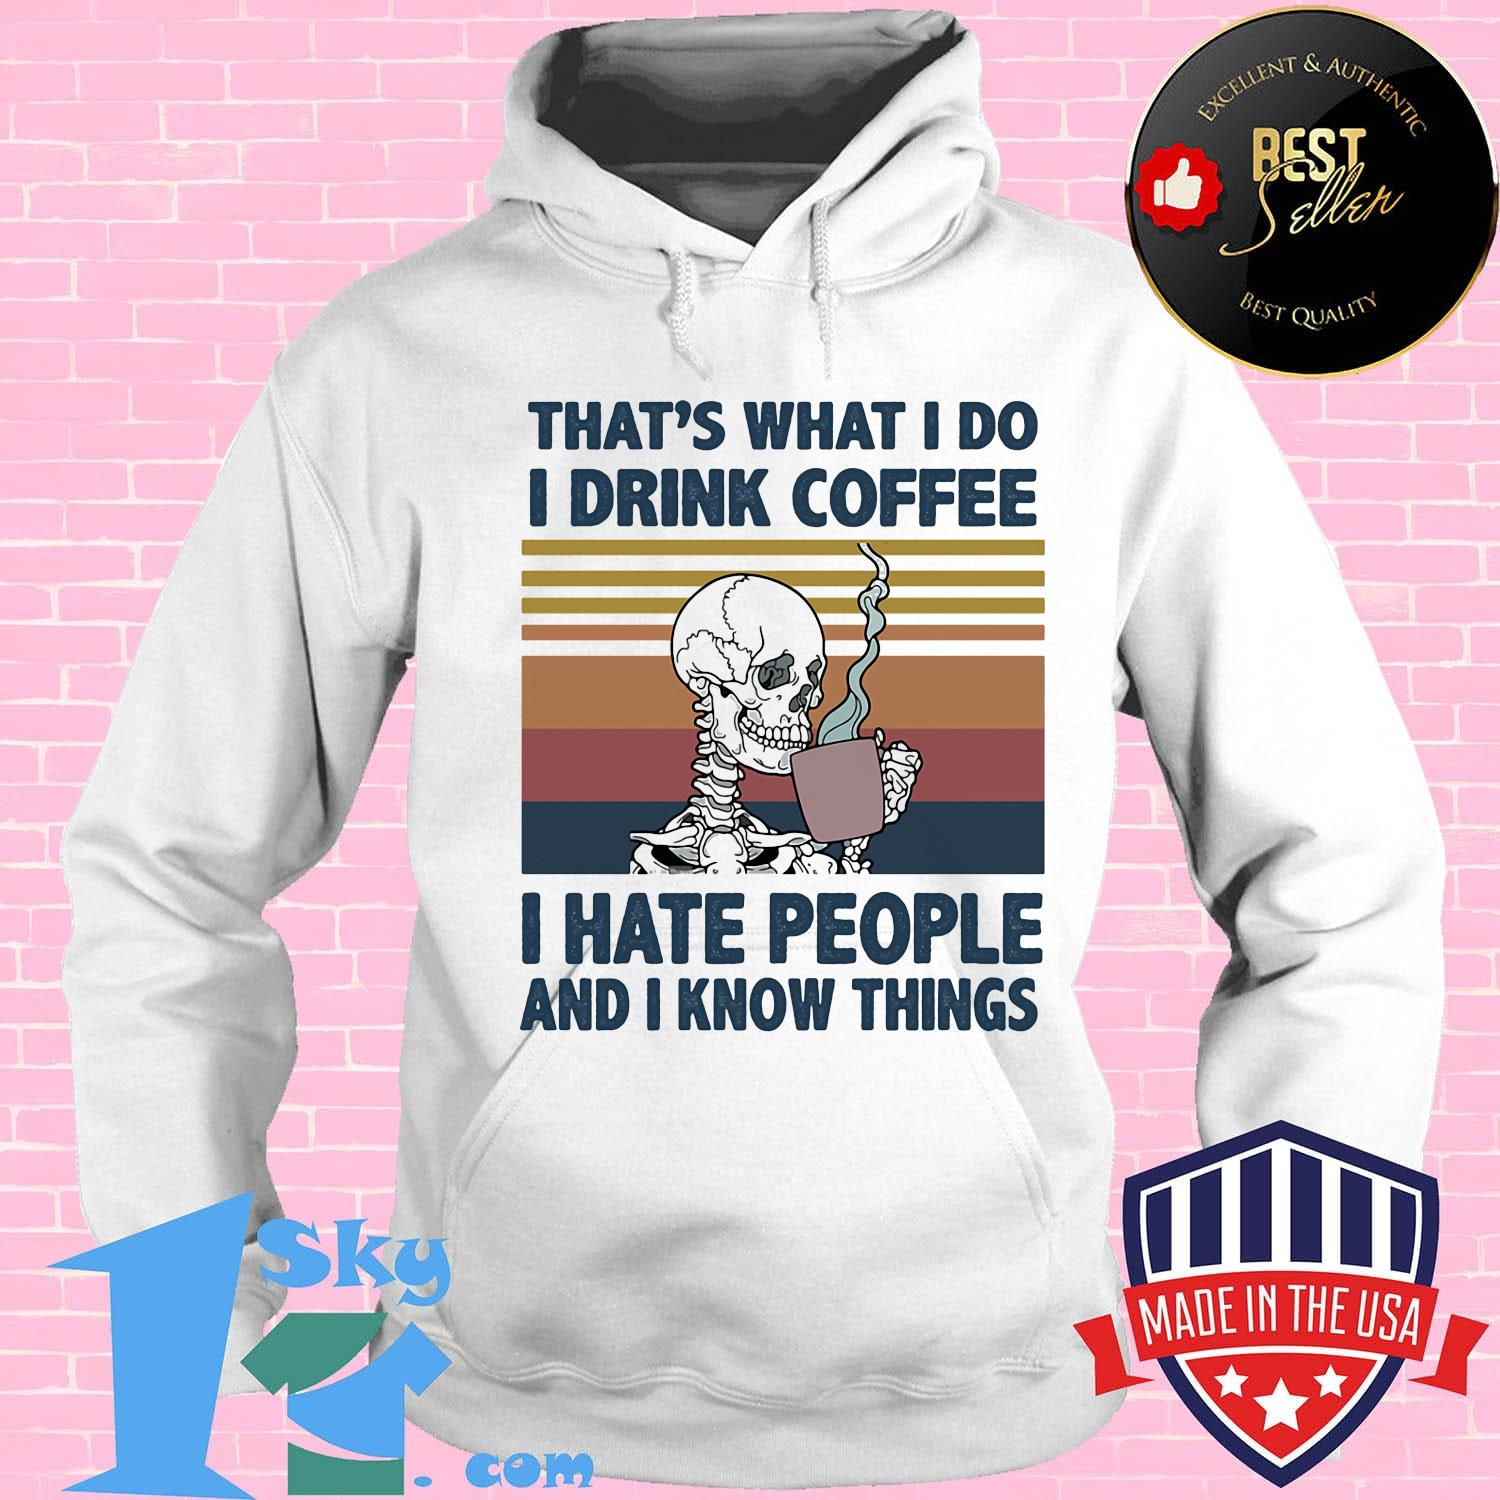 e2bd8158 that s what i do i drink coffee i hate people and i know things skeleton vintage retro shirt hoodie - Shop trending - We offer all trend shirts - 1SkyTee